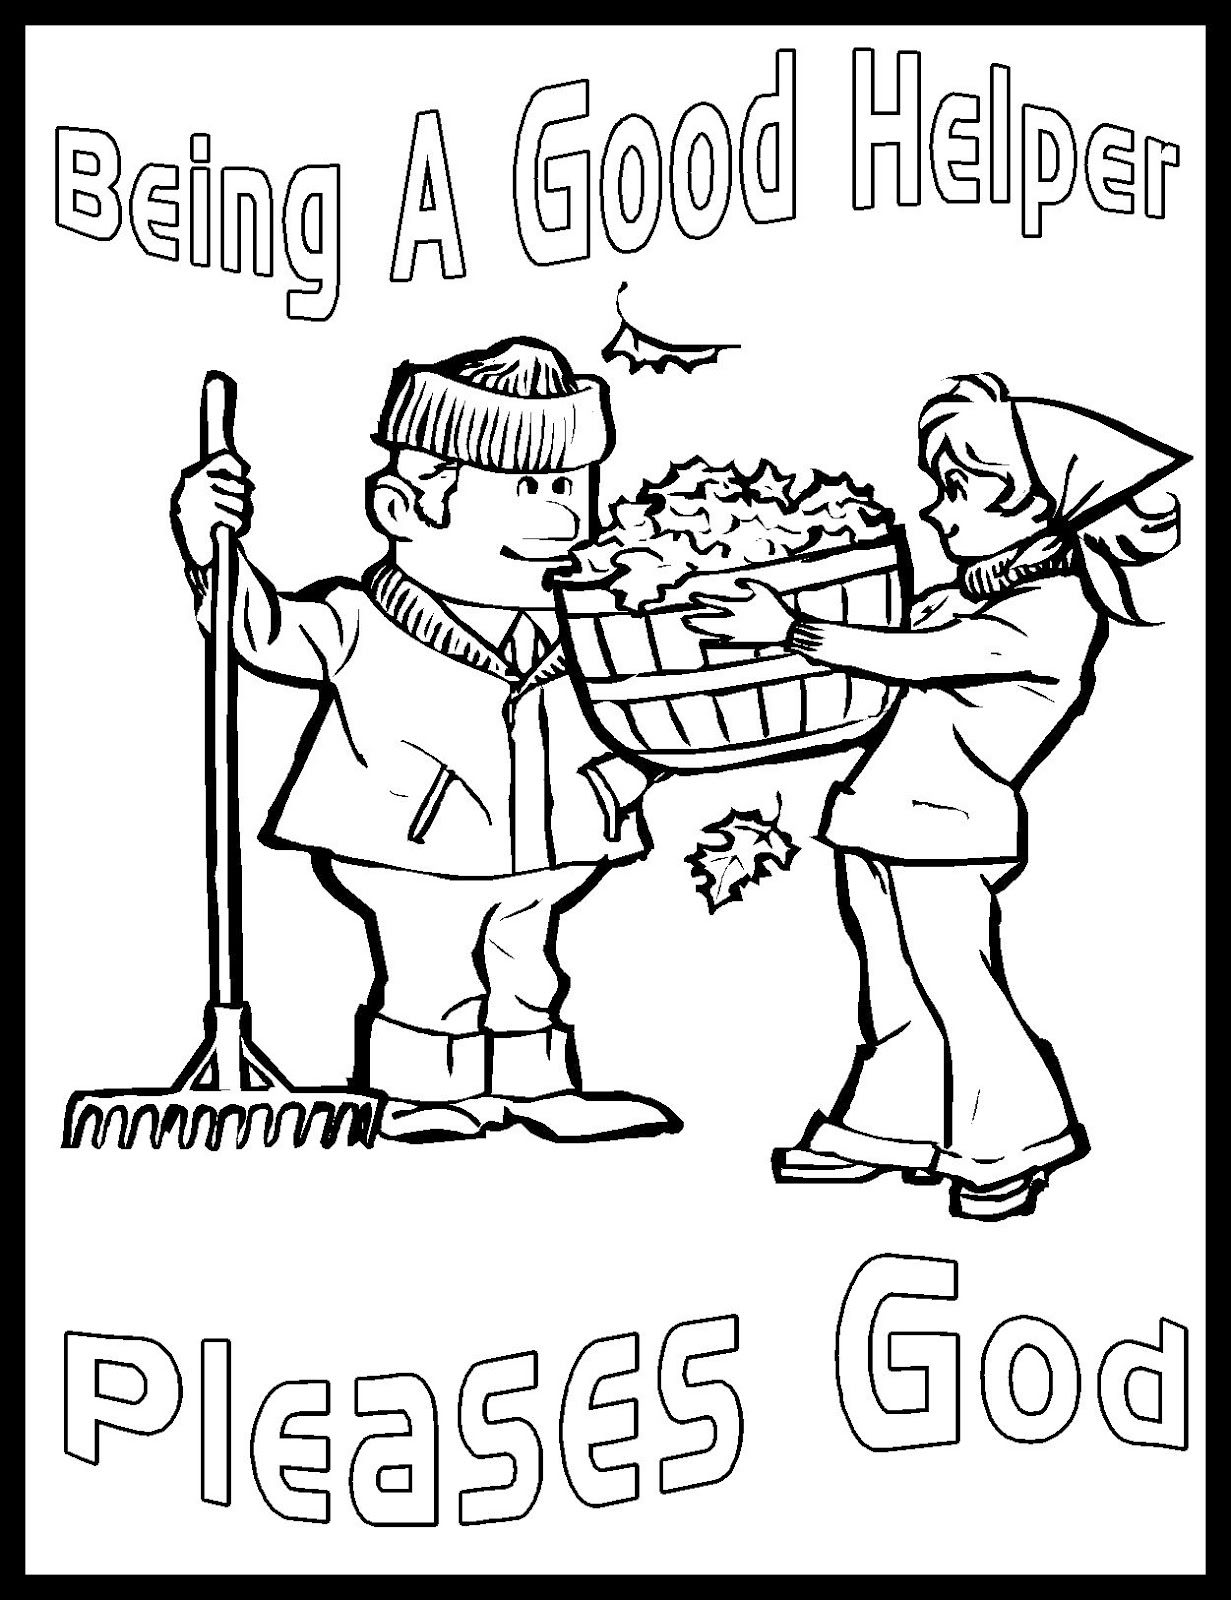 Being A Good Christian Coloring Page Sketch Coloring Page Christian Coloring Coloring Pages Jesus Coloring Pages